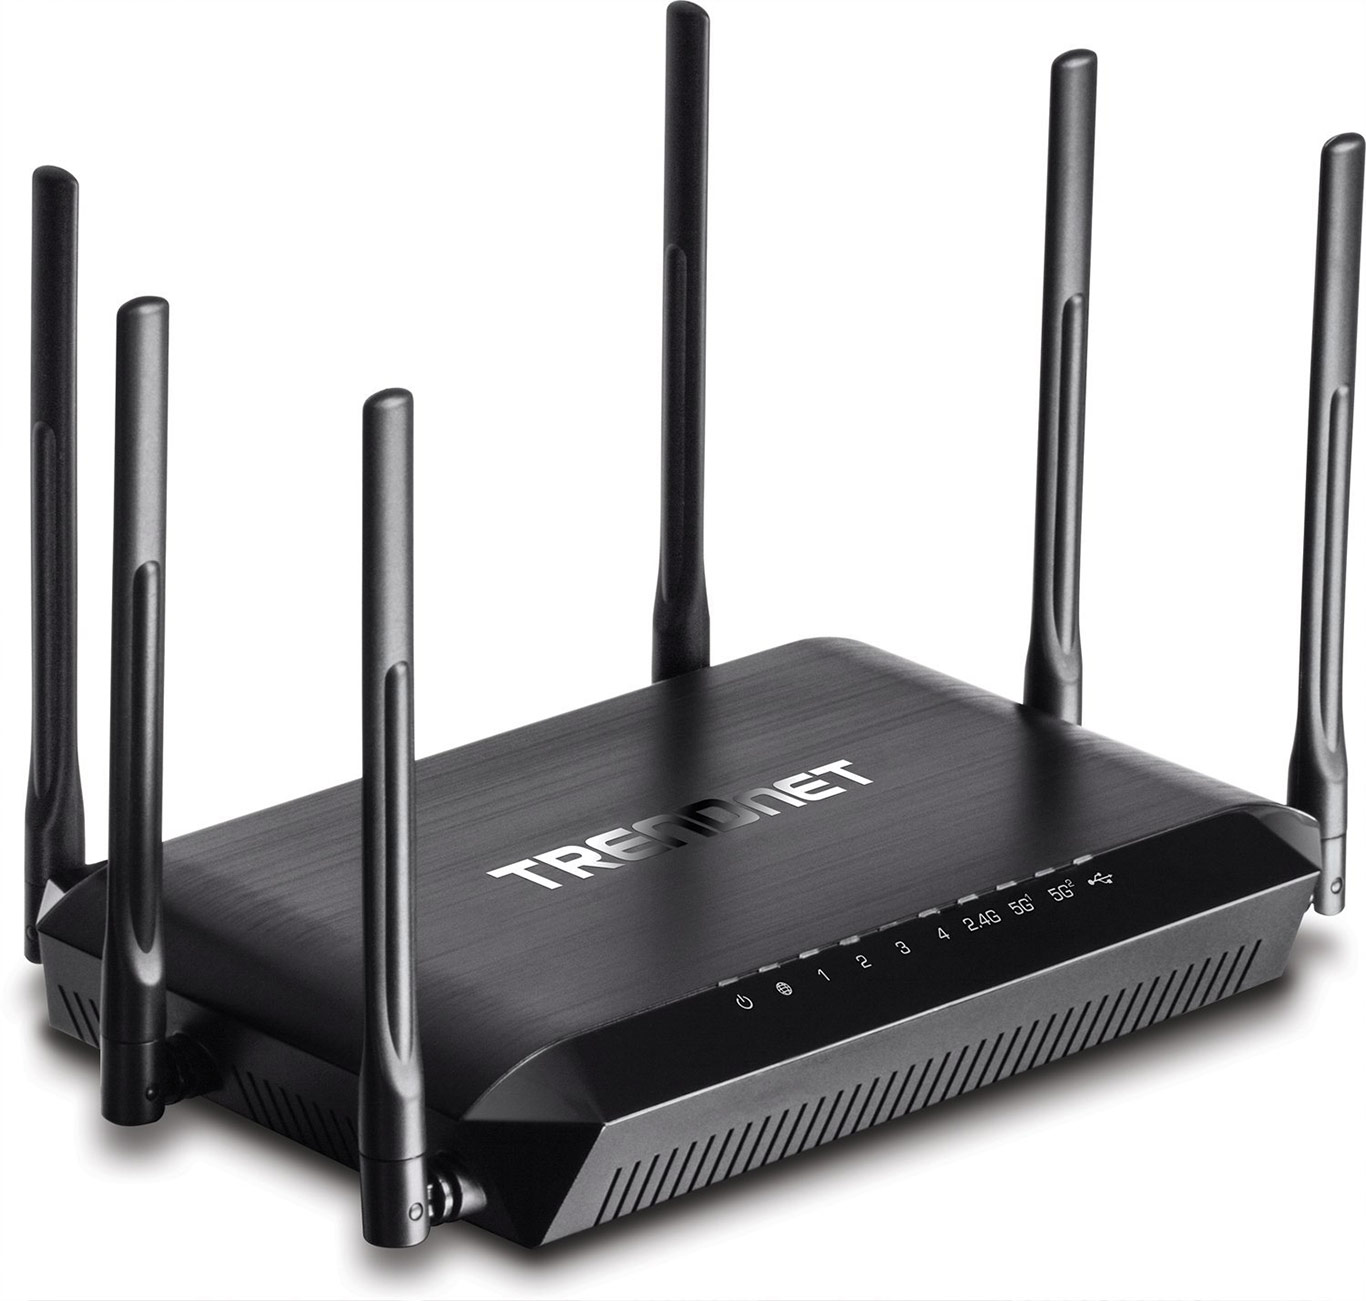 802.11ac Wi-Fi Router Round-Up: ASUS, Netgear, D-Link, and TRENDnet